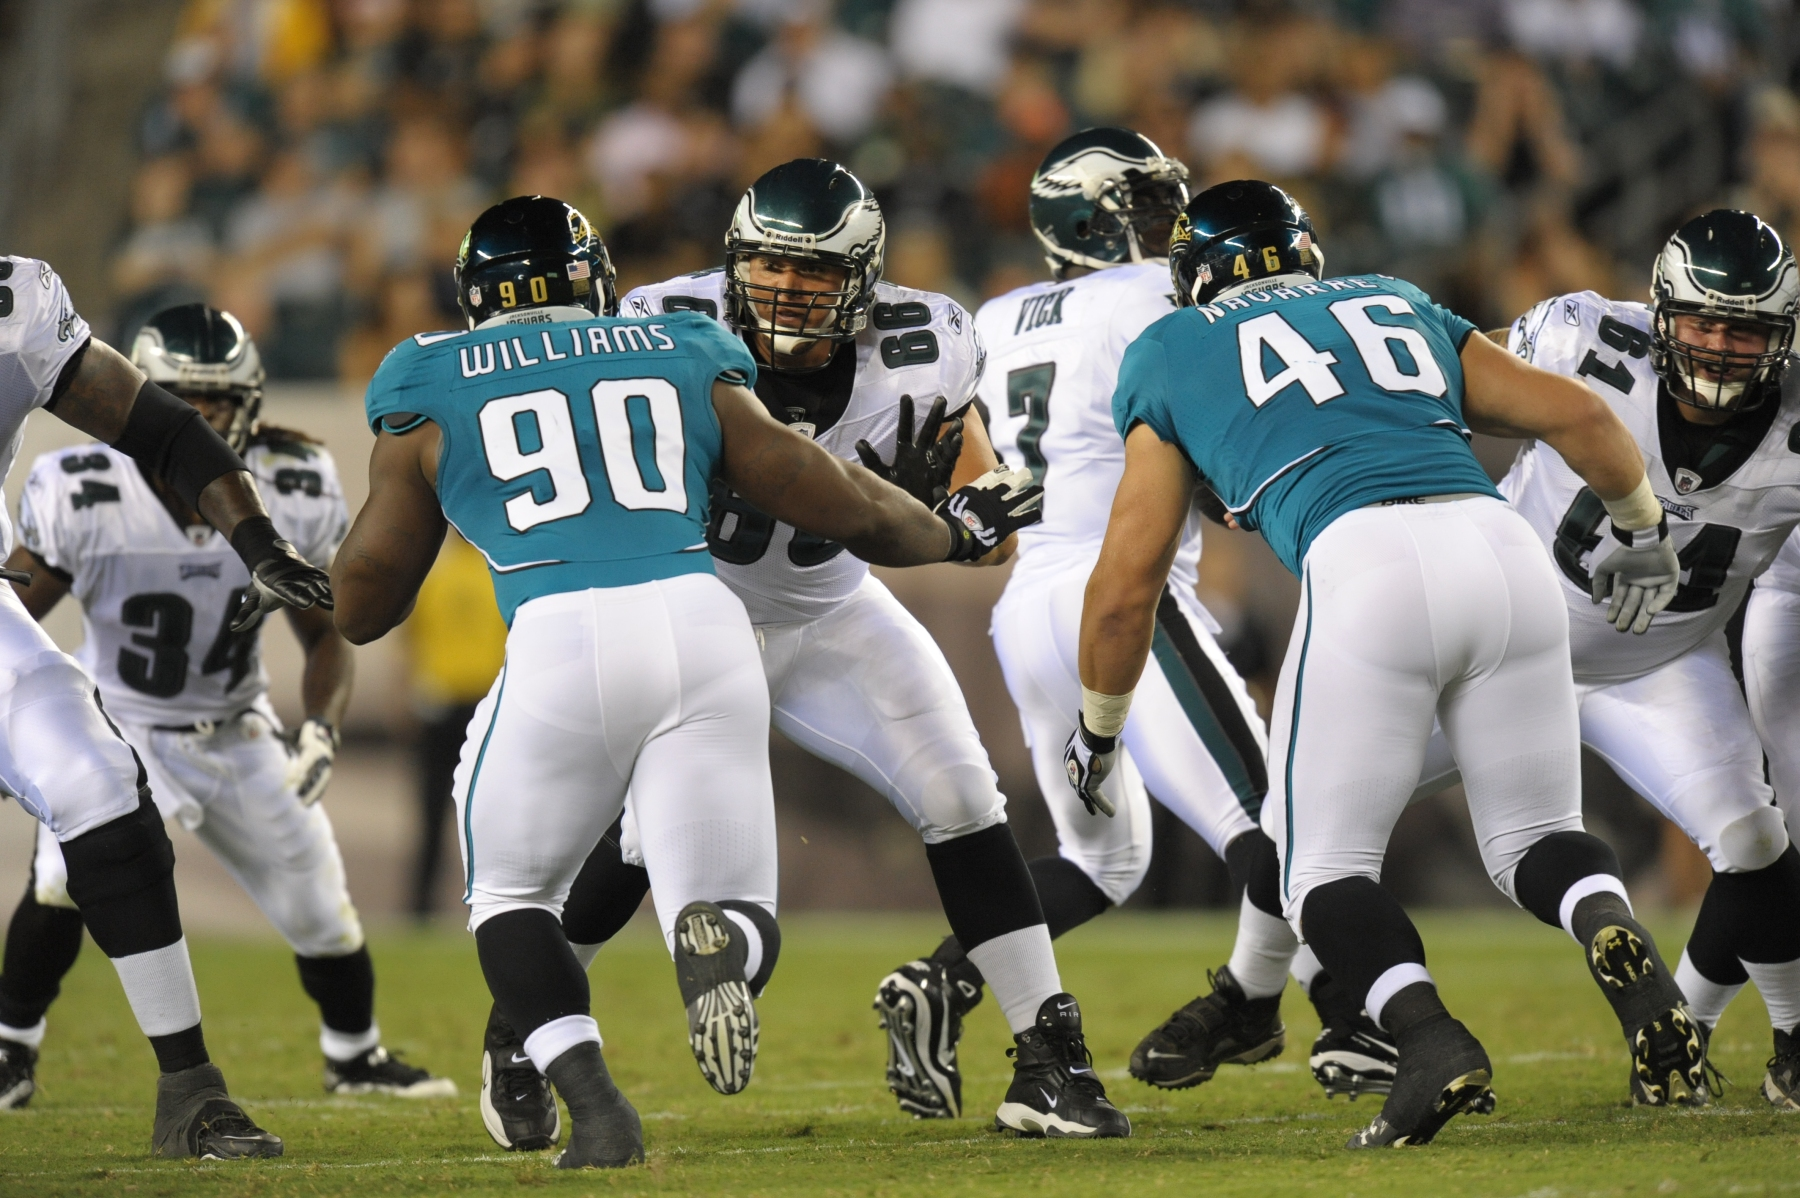 PHILADELPHIA - AUGUST 13: Guard Dallas Reynolds #66 of the Philadelphia Eagles blocks during the preseason game against the Jacksonville Jaguars on August 13, 2010 at Lincoln Financial Field in Philadelphia, Pennsylvania. The Eagles won 28-27. (Photo by Drew Hallowell/Getty Images)